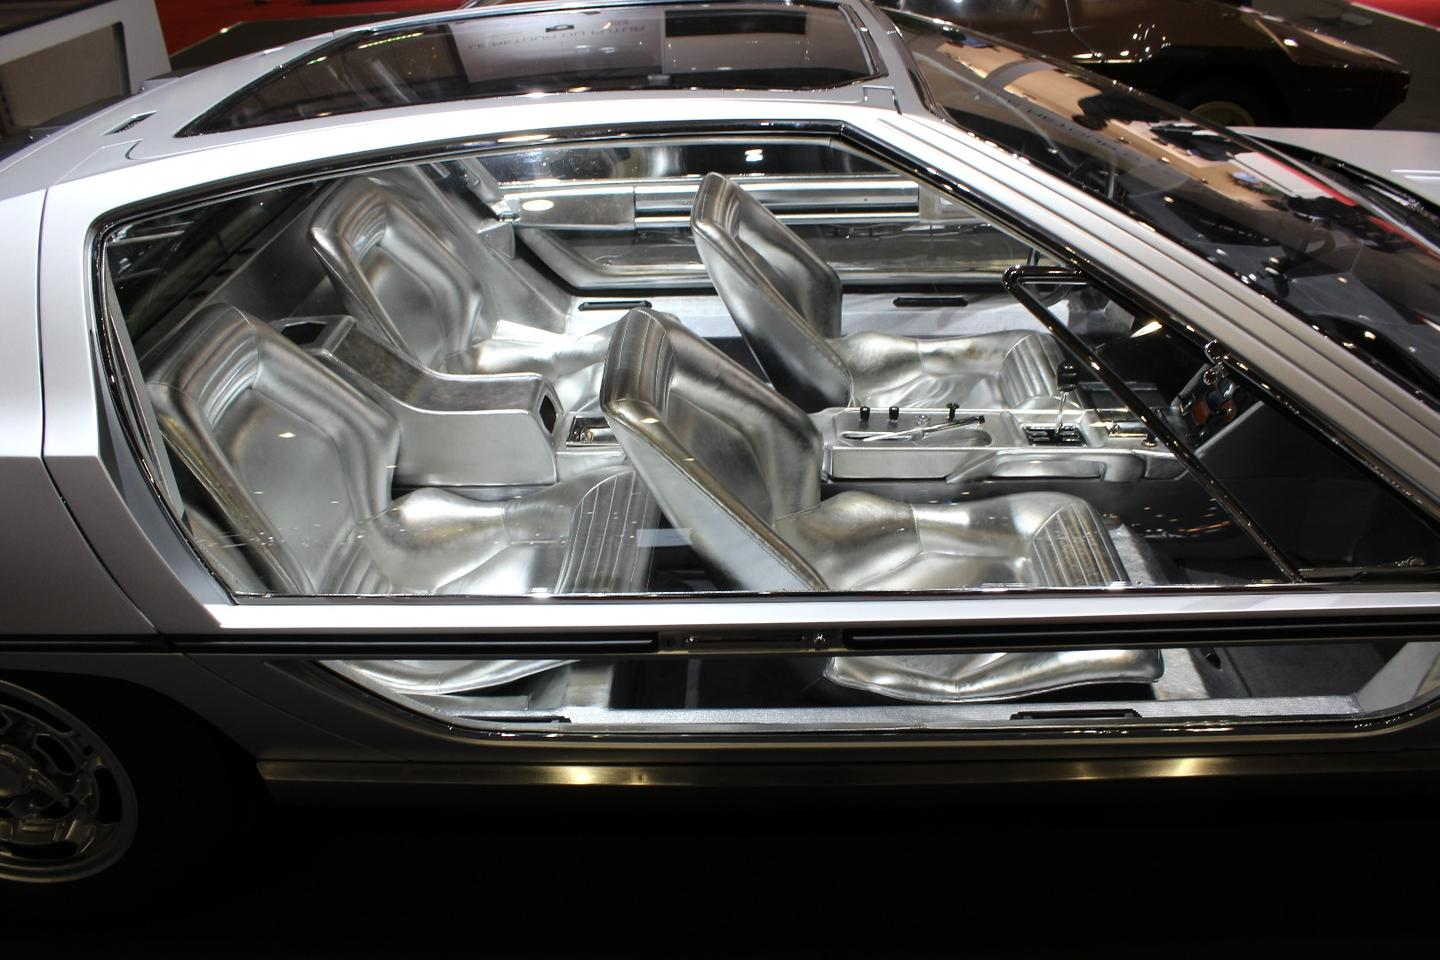 The ultra-shiny 1967Lamborghini Marzal concept from Bertone was one of the immediate highlights of Geneva 2018